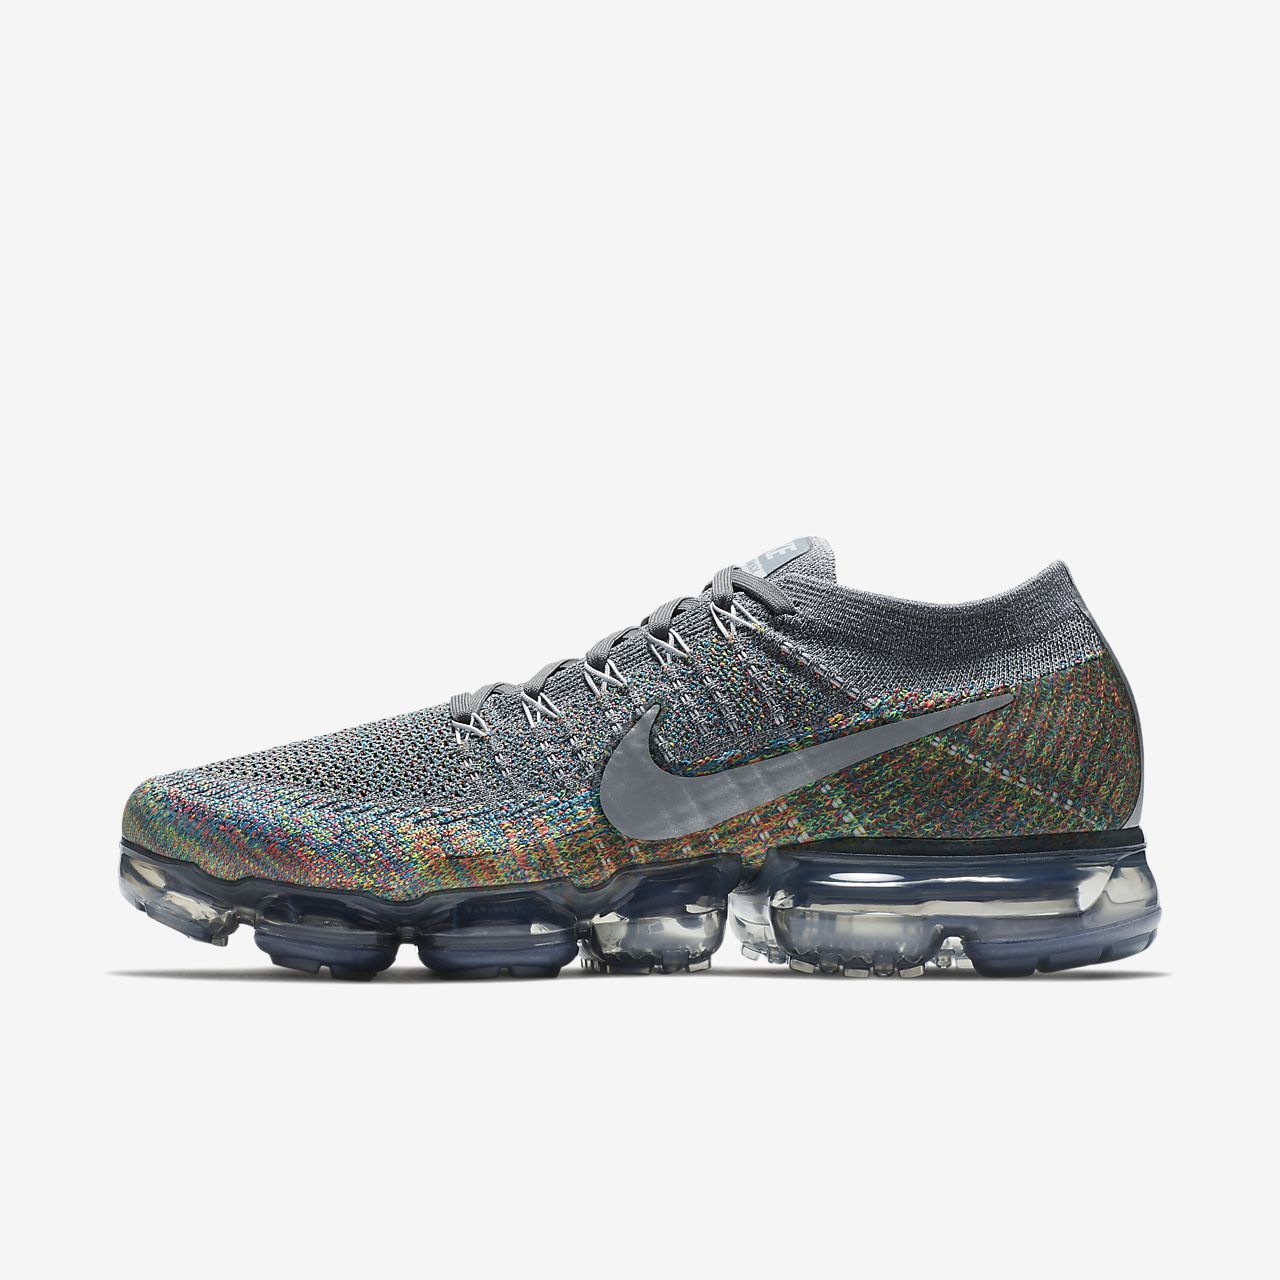 classic fit 2d677 a6d5f ... Chaussure Nike Air VaporMax Flyknit pour Homme